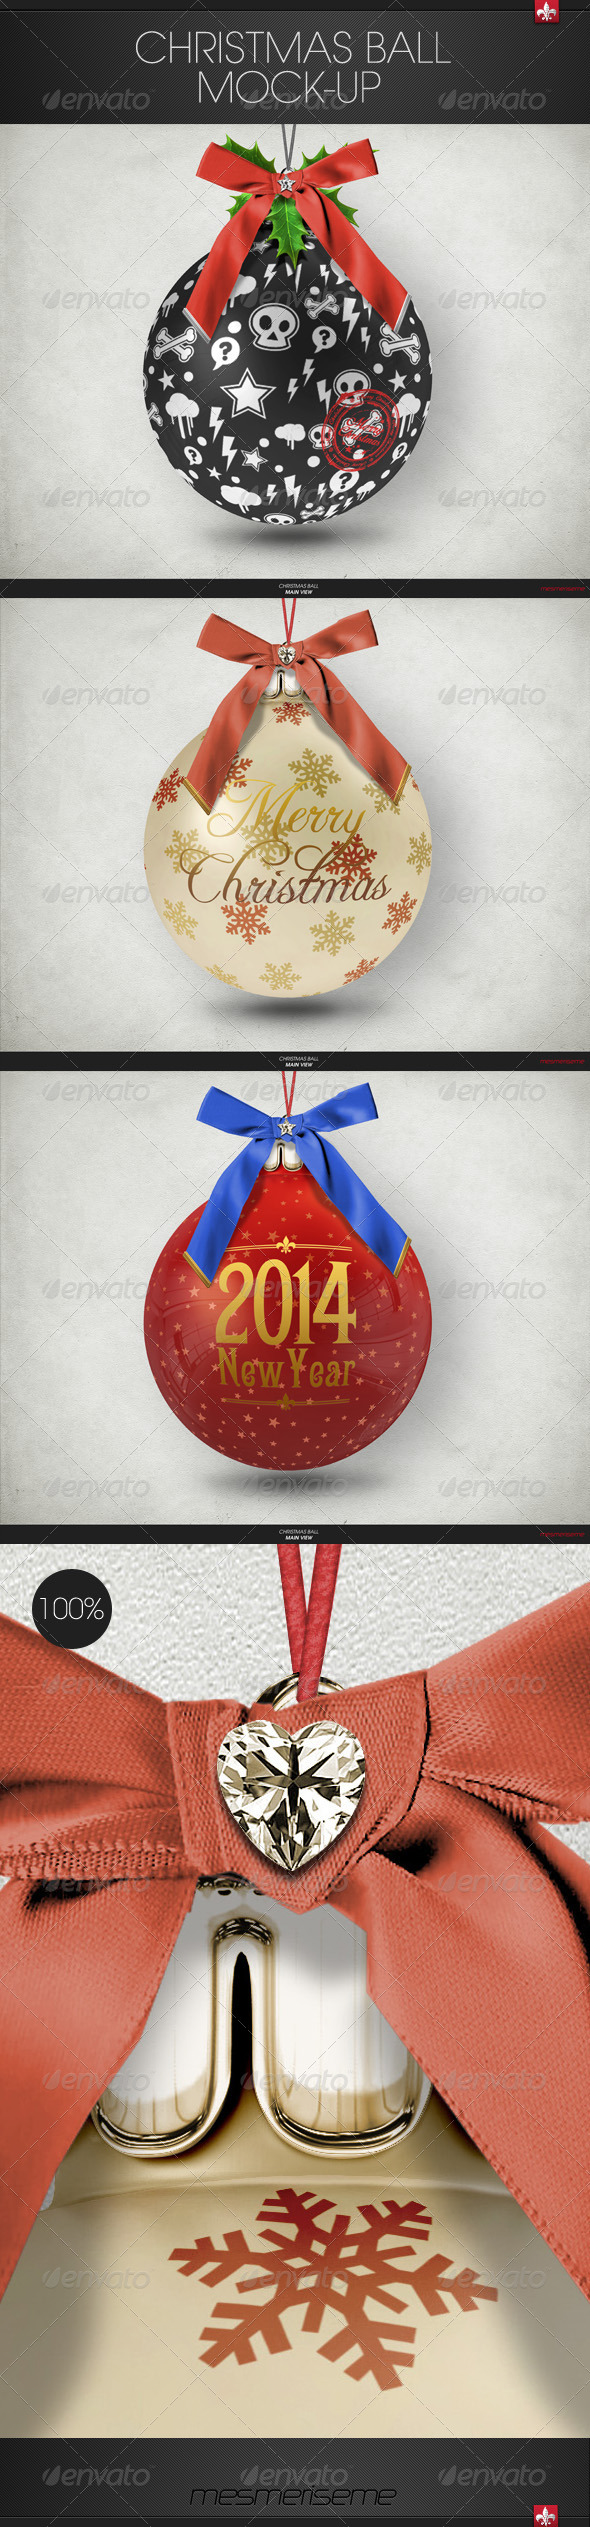 GraphicRiver Christmas Ball Mock-up 6284453